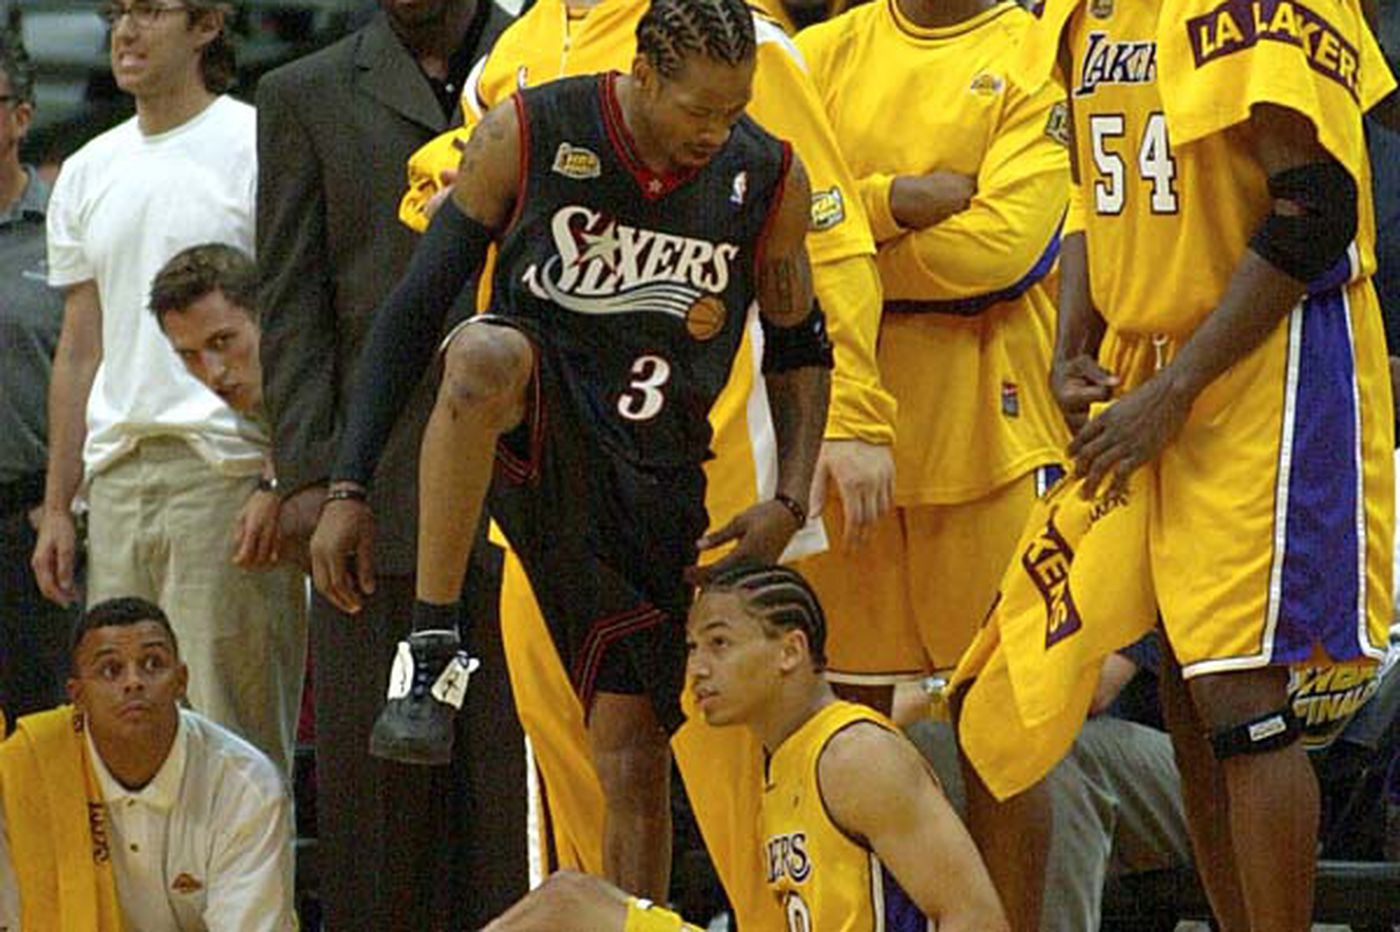 Sixers playoff flashback: Allen Iverson, Sixers take a big step over favored Lakers